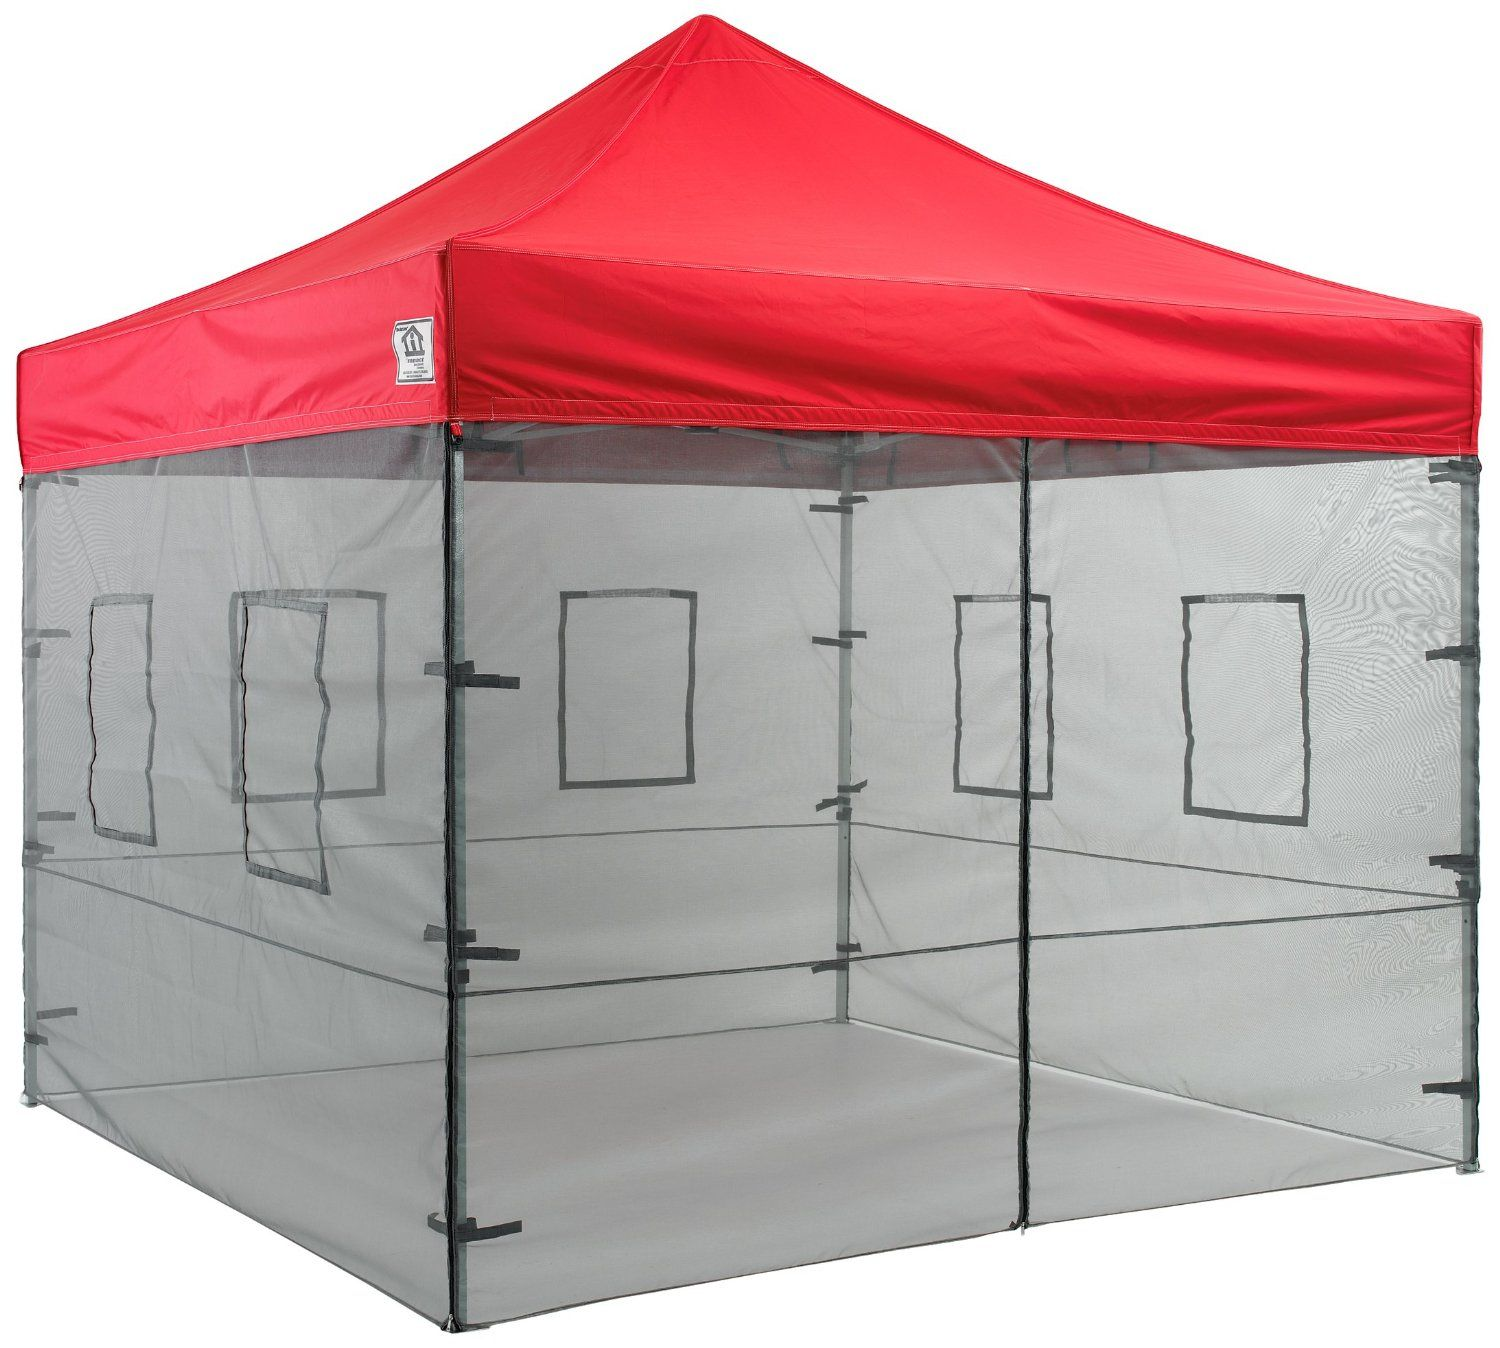 Impact Canopies 10ao Vendor Food Mesh Walls Sidewall Canopy Kit Walls Only To View Further For This Item Visit The Image Link Camping Gear Canopy Tent Canopy Tent